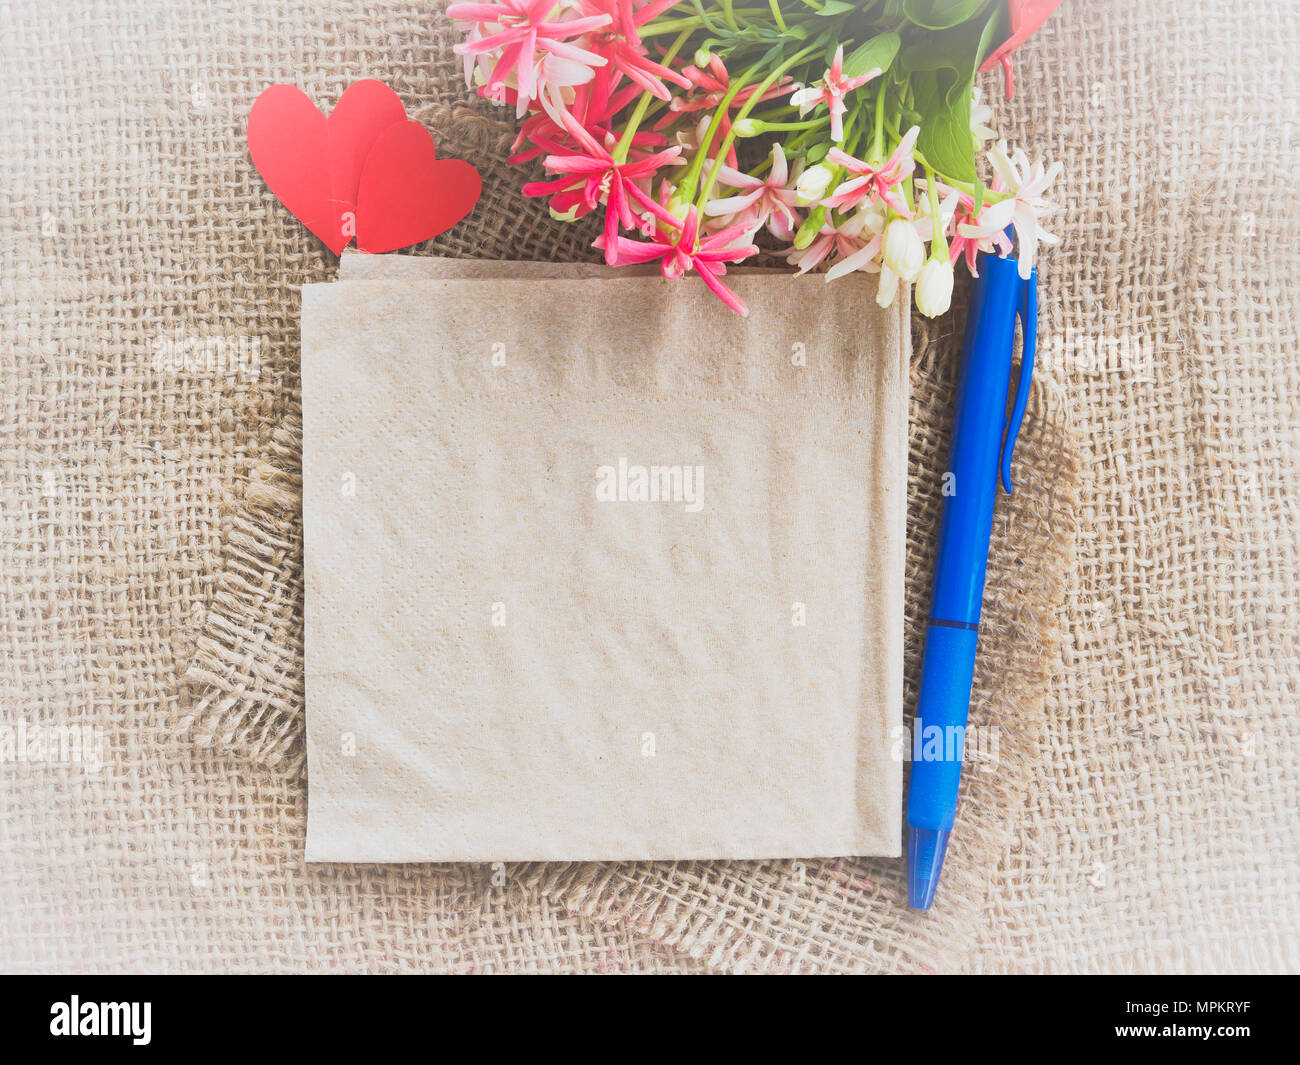 Poster mock up template with flower bouquet color paper in the poster mock up template with flower bouquet color paper in the shape of heart and blue pen on brown sack background izmirmasajfo